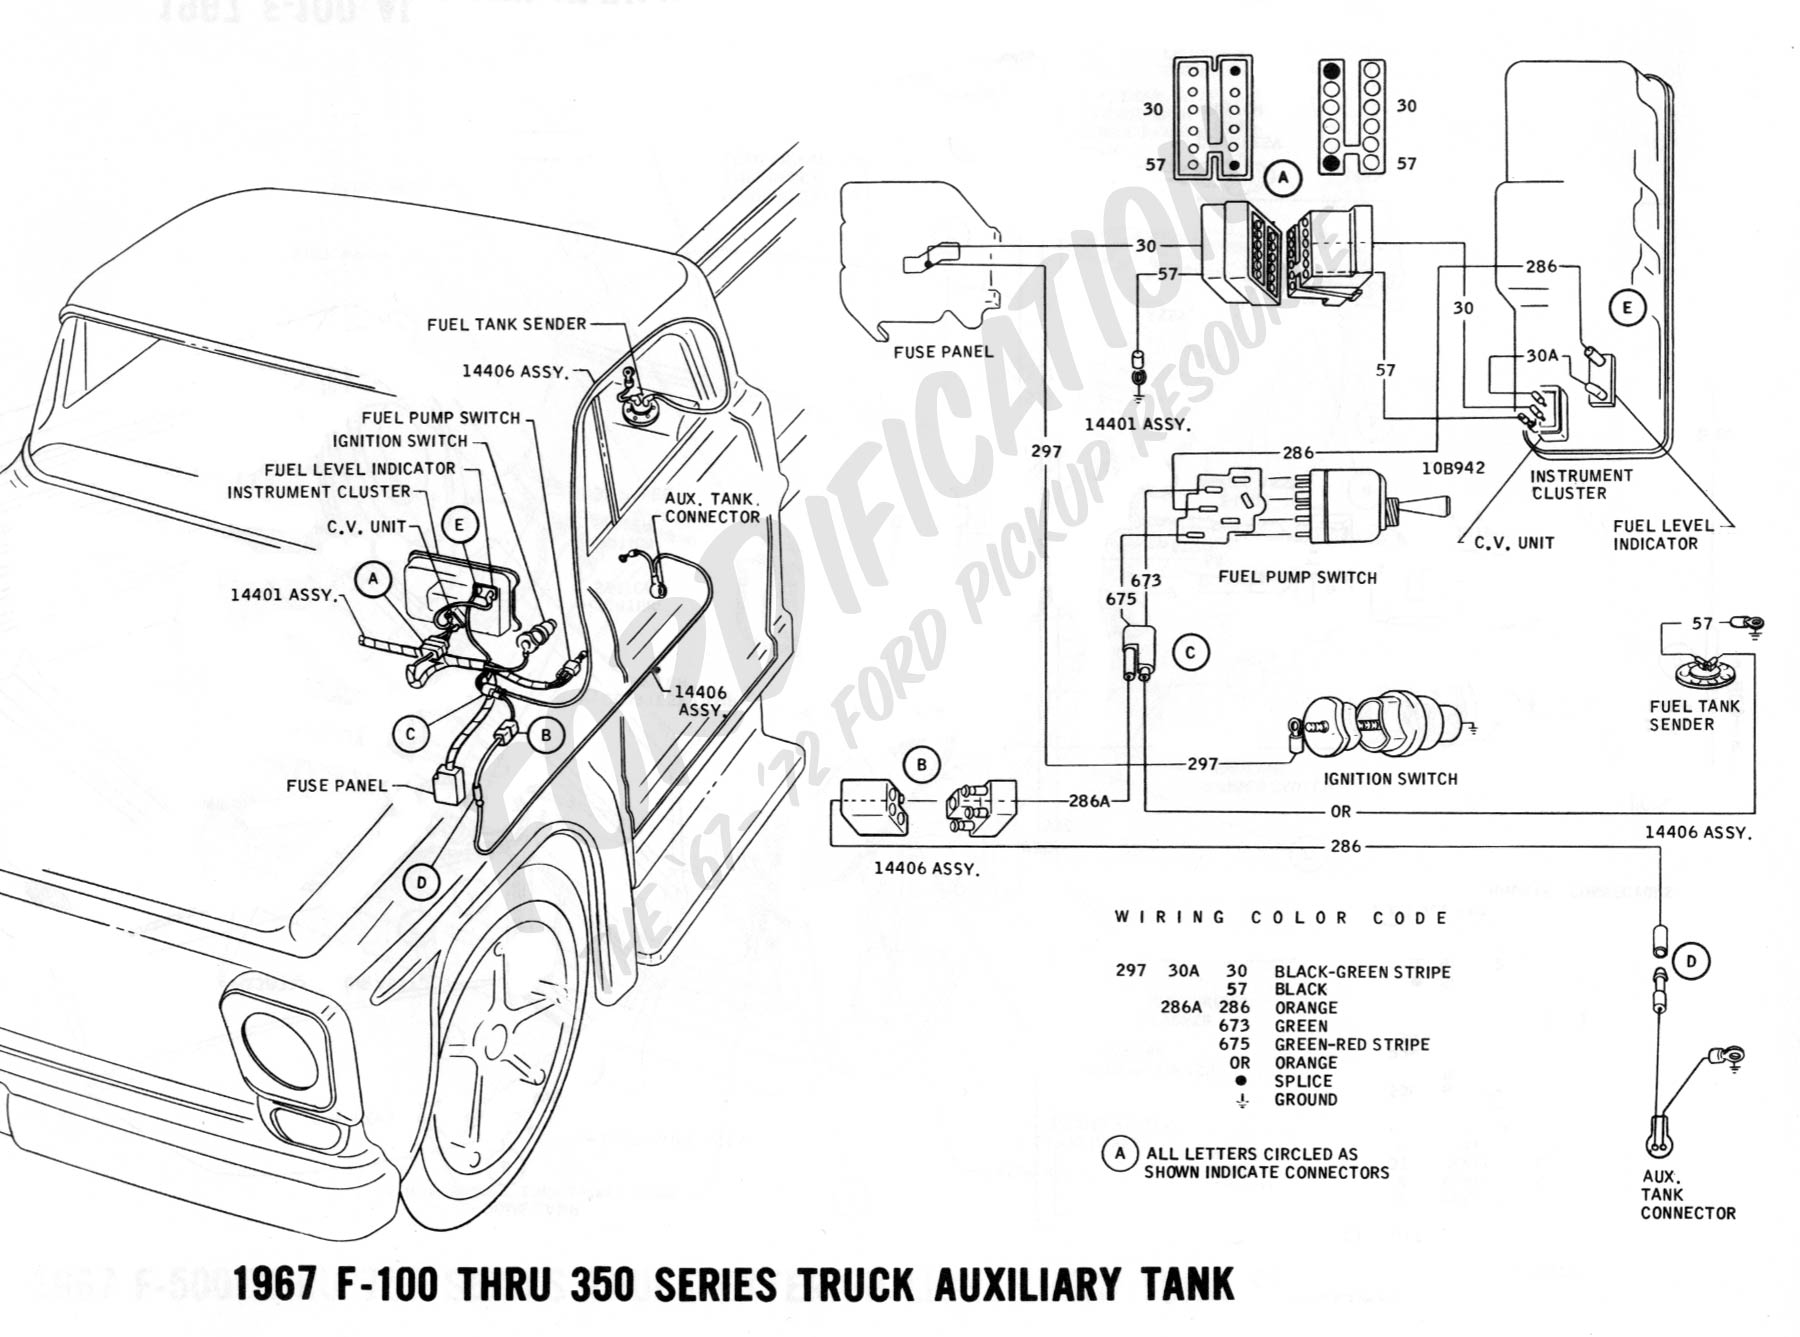 Ford Fuel Selector Valve Diagram Ford Wiring Diagram Images